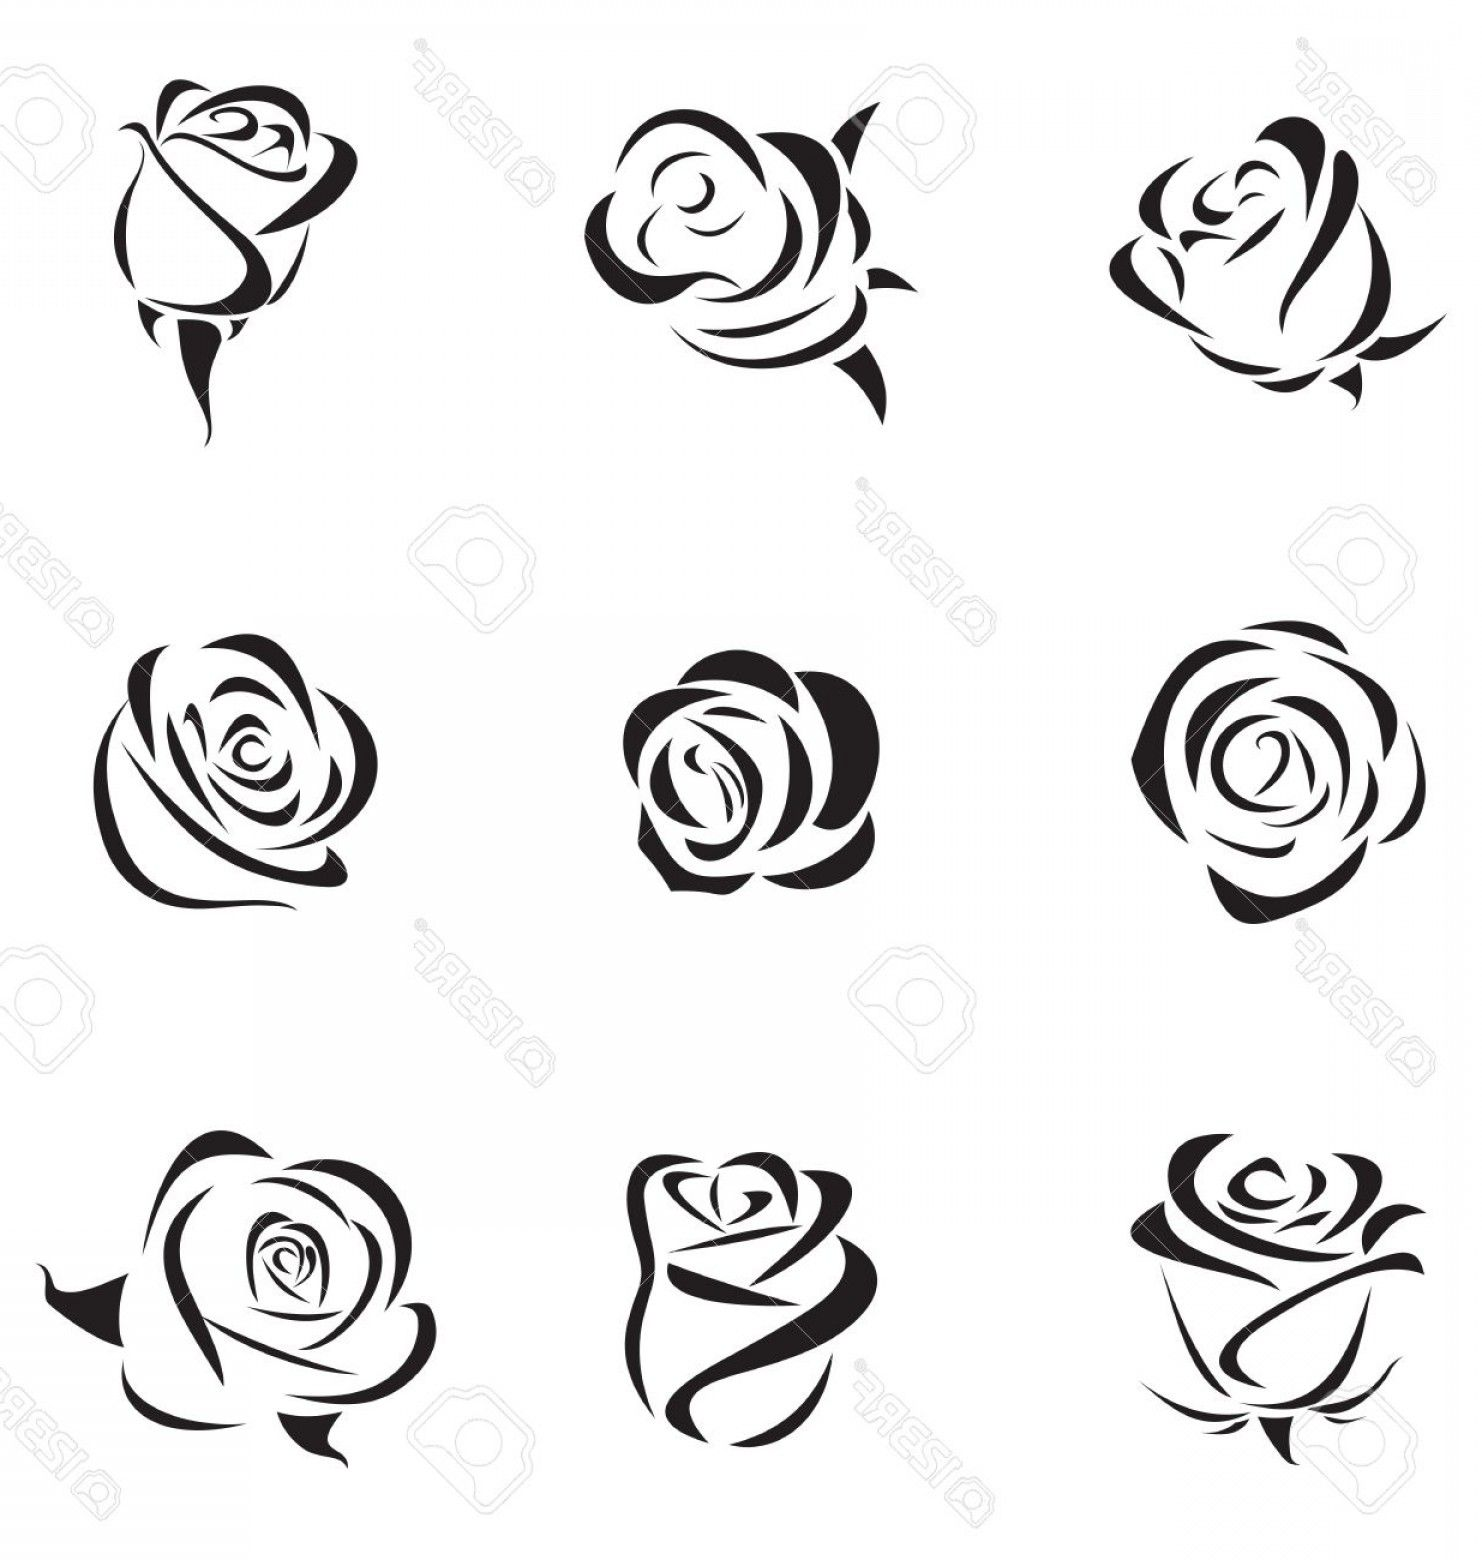 Simple Rose Silhouette Vector Photovector Illustration Of Outline Rose Set Rose Outline Roses Drawing Rose Drawing Tattoo